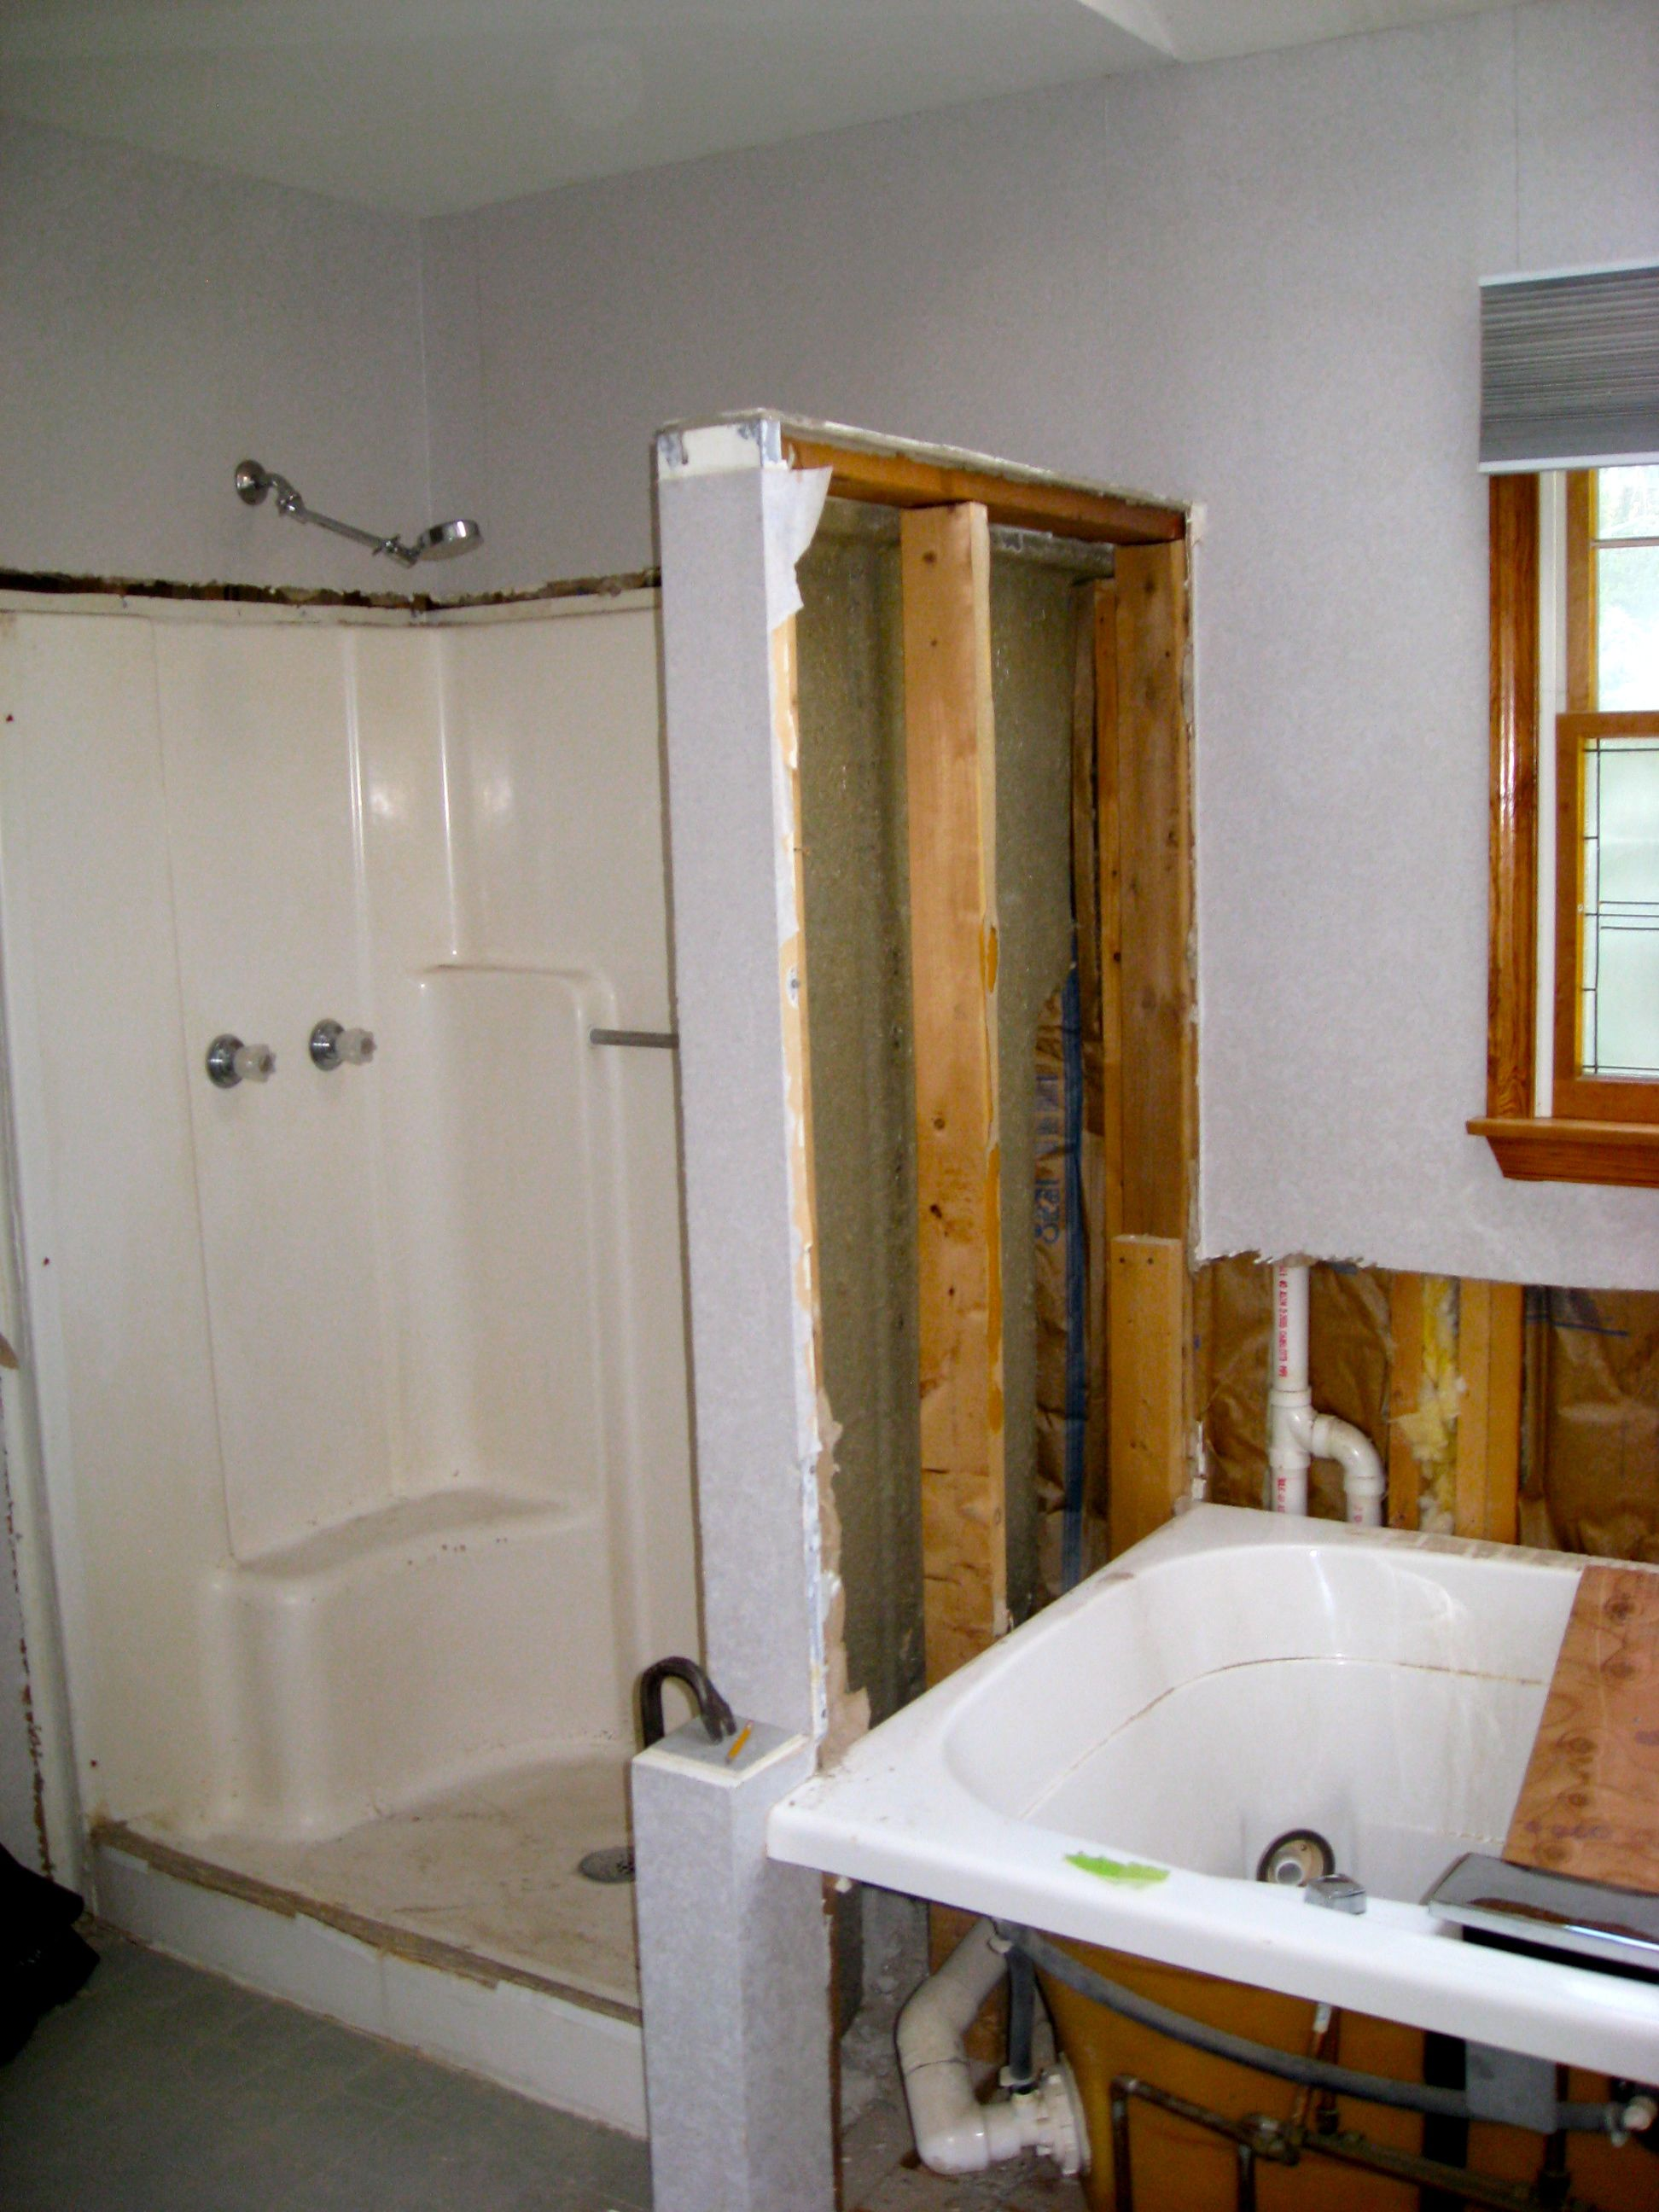 Start of demolition. Had existing fiberglass shower surround and ...